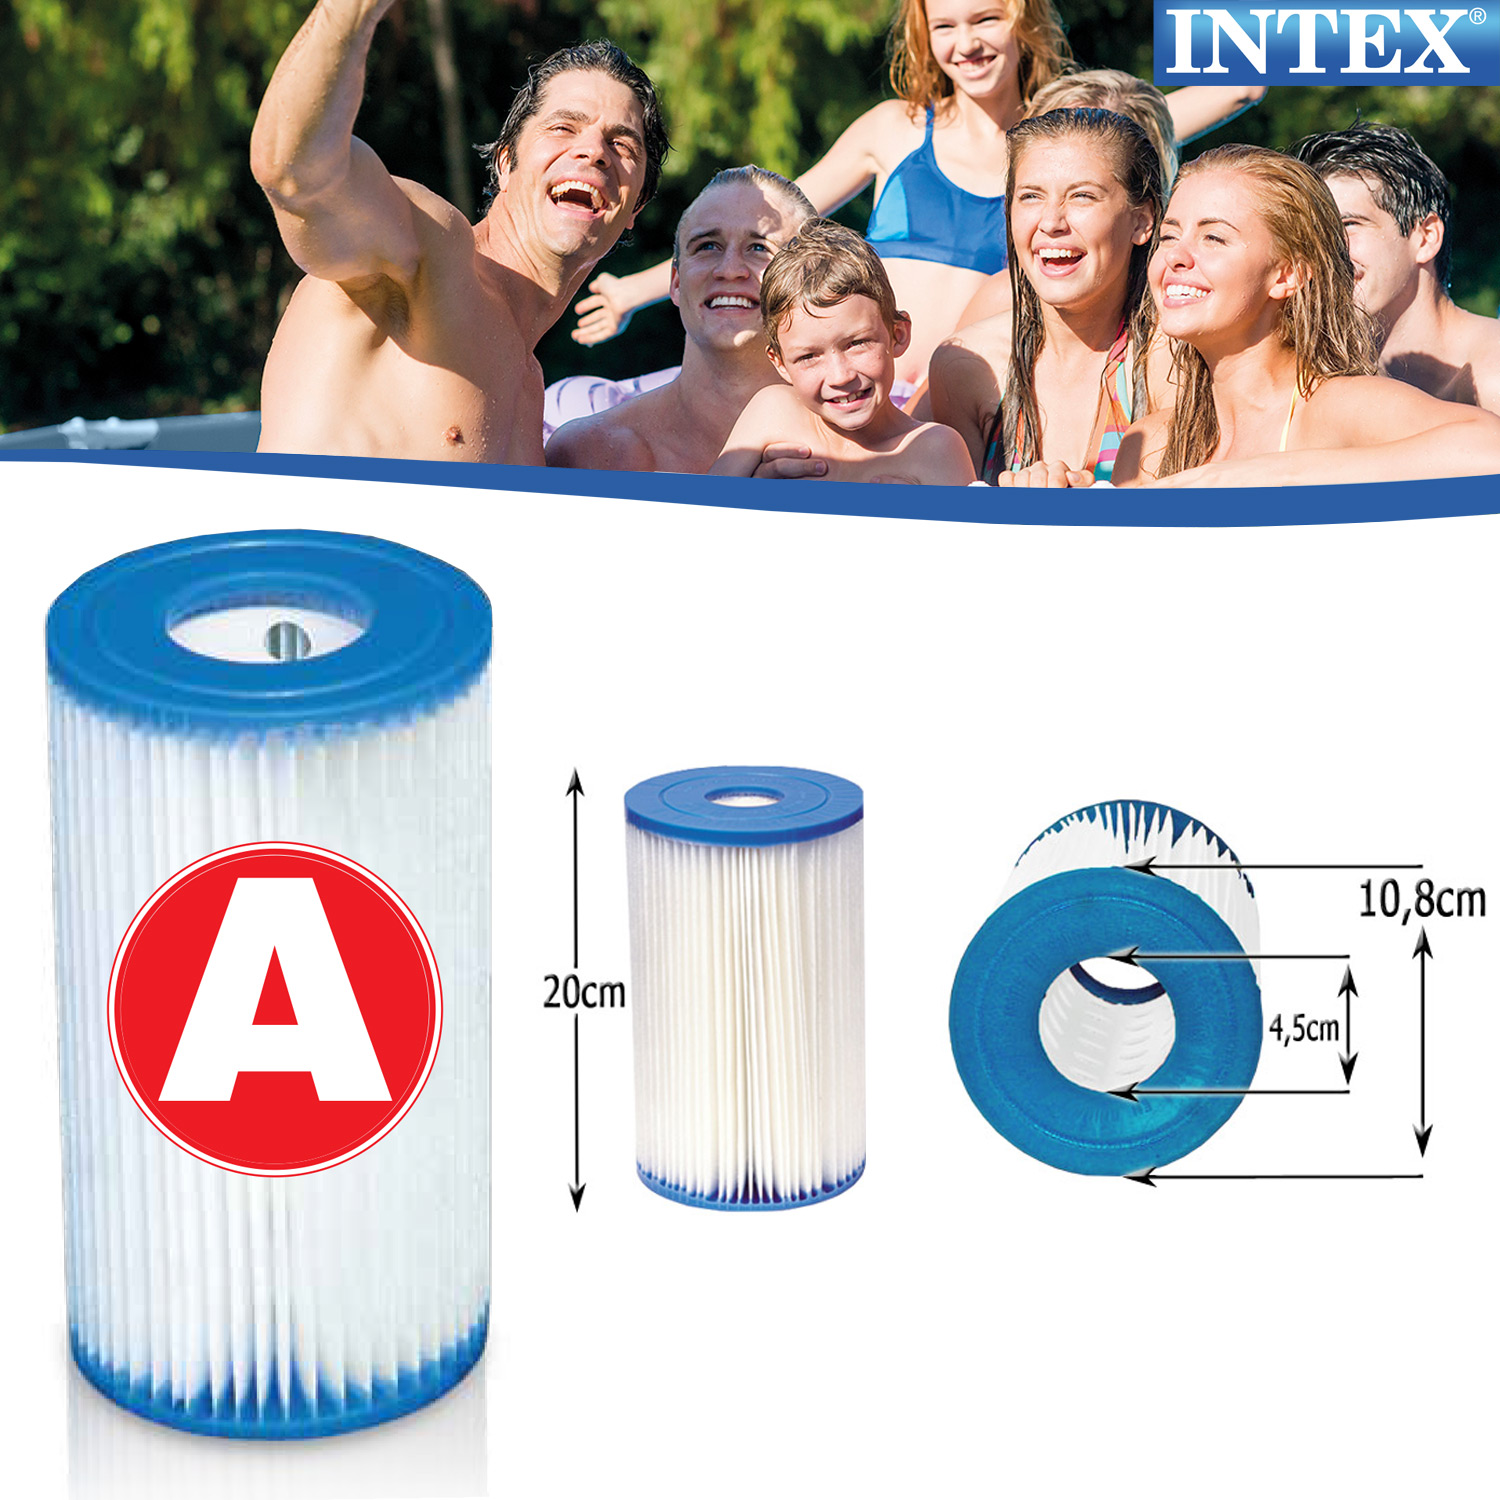 Quick Pool Reinigen Intex Pool Filter Pumpe Kartuschen Ersatzfilter